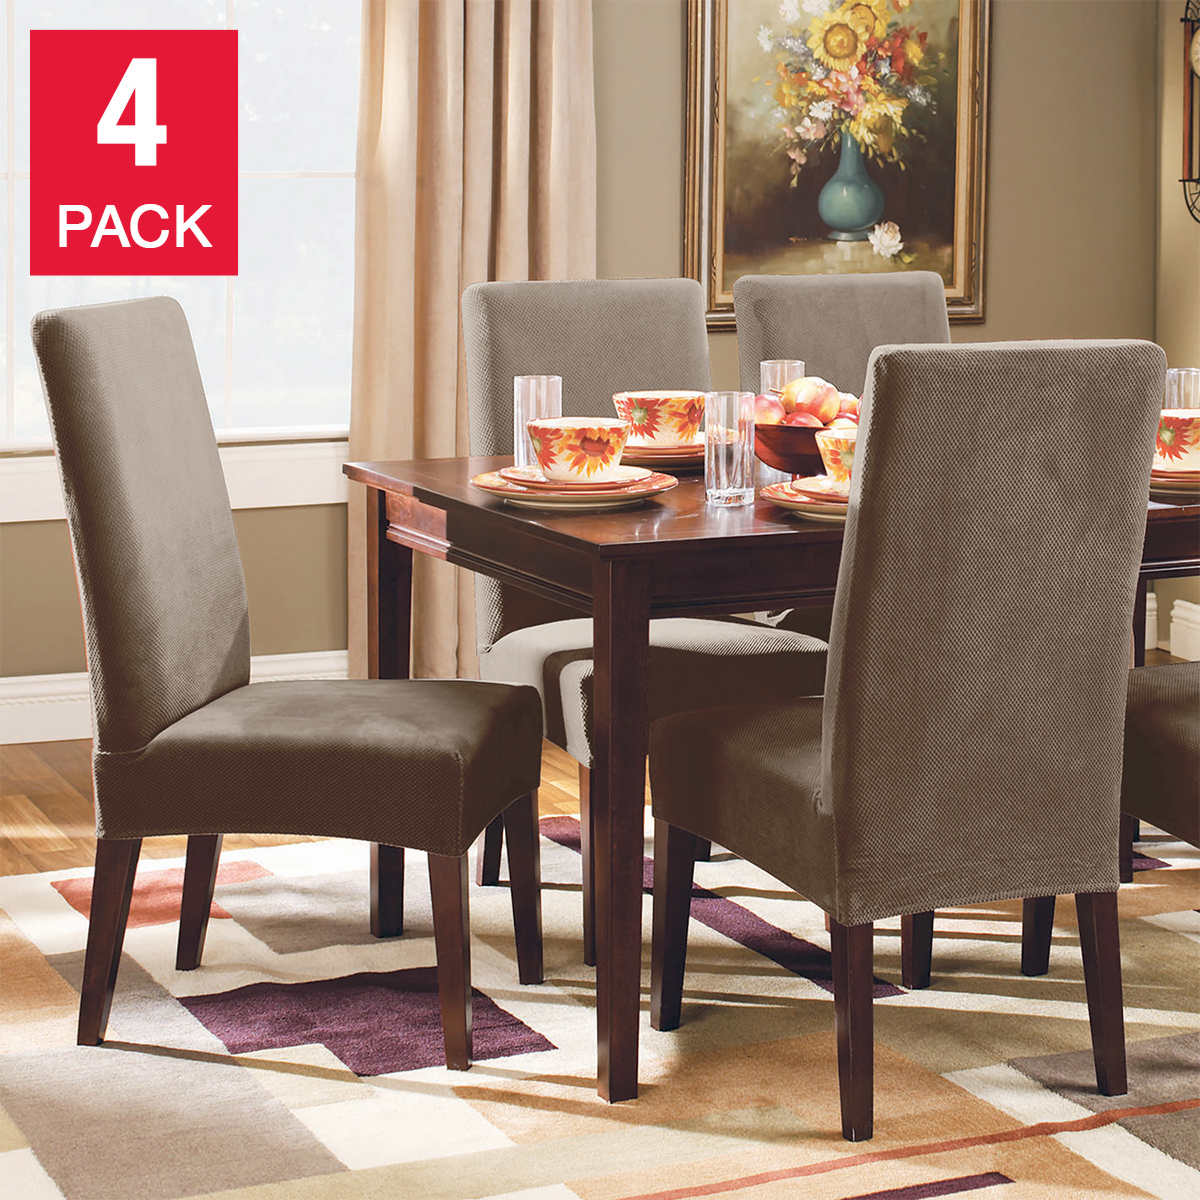 Surefit Stretch Pique Dining Chair Covers 4 Pack Costco